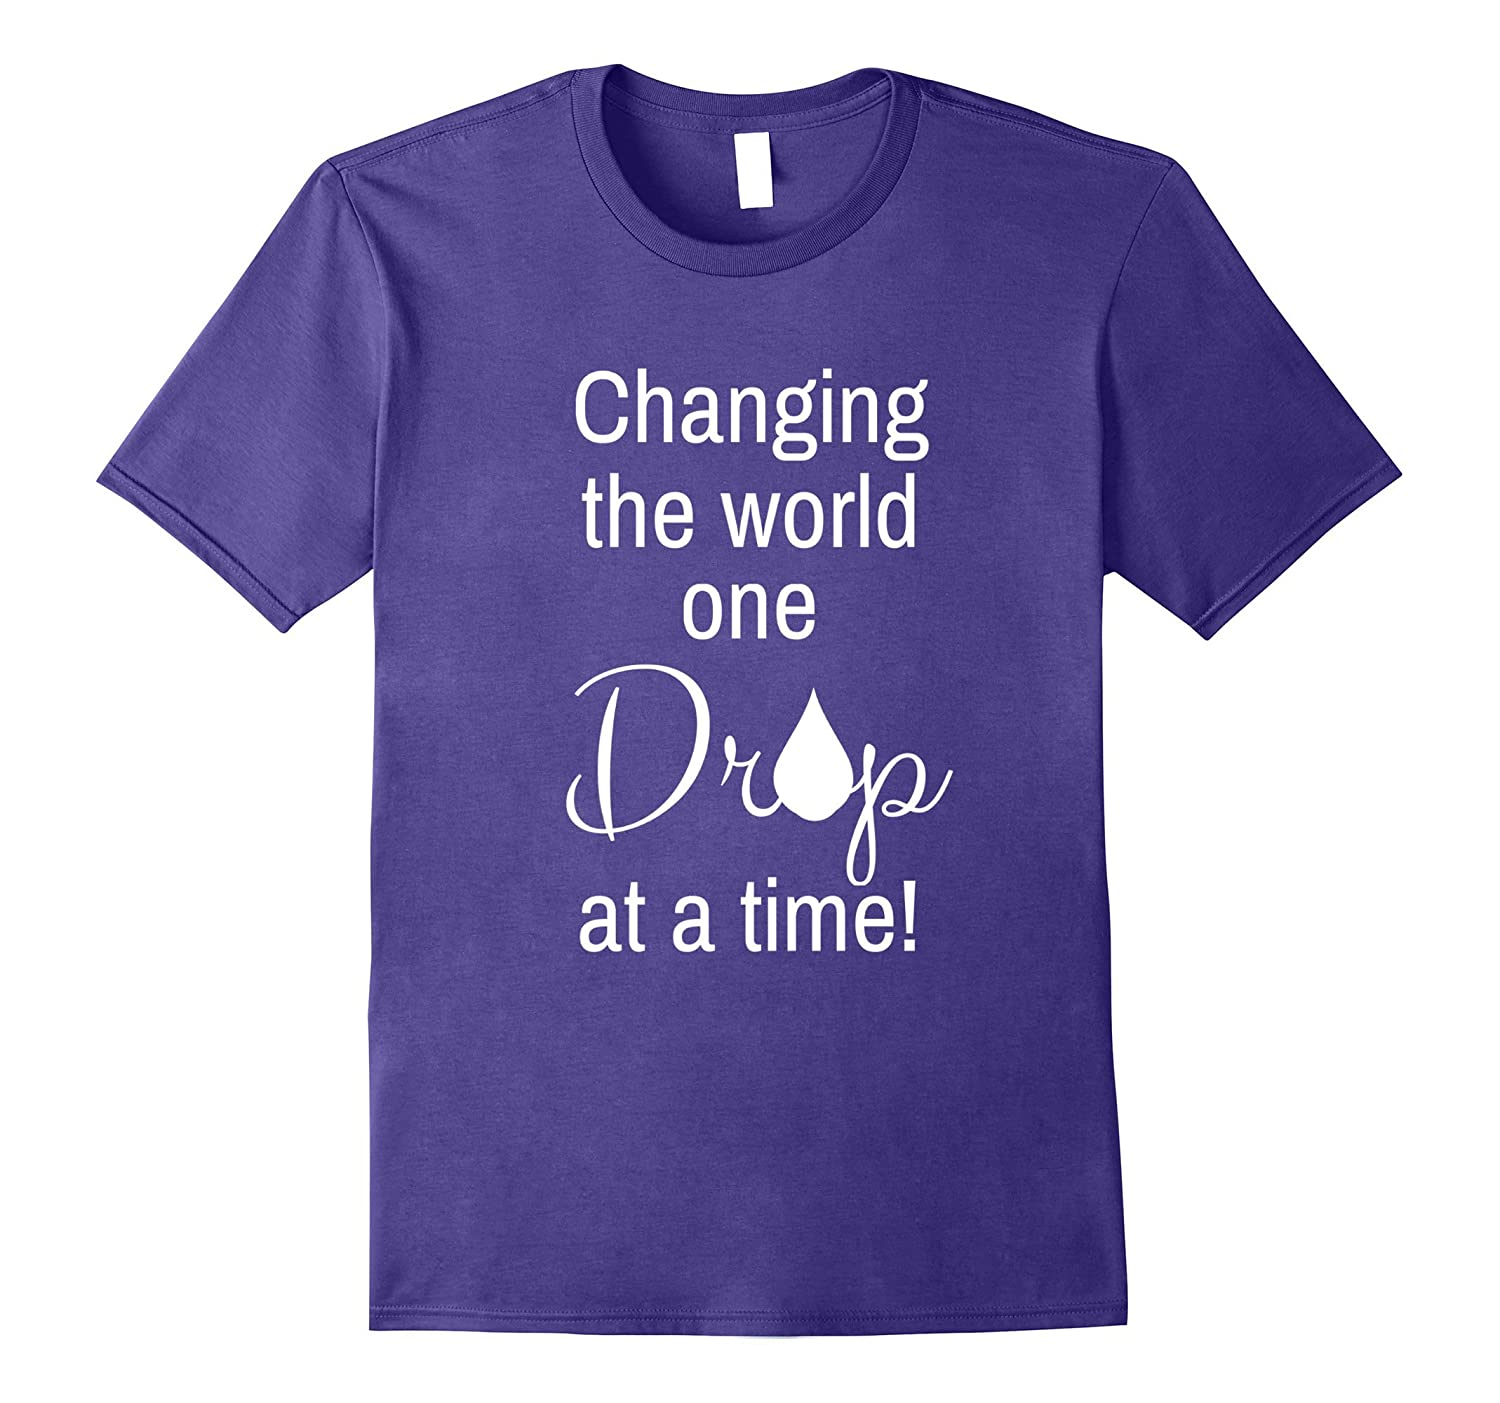 Changing the world one drop at a time Essential Oil t-shirt-Vaci